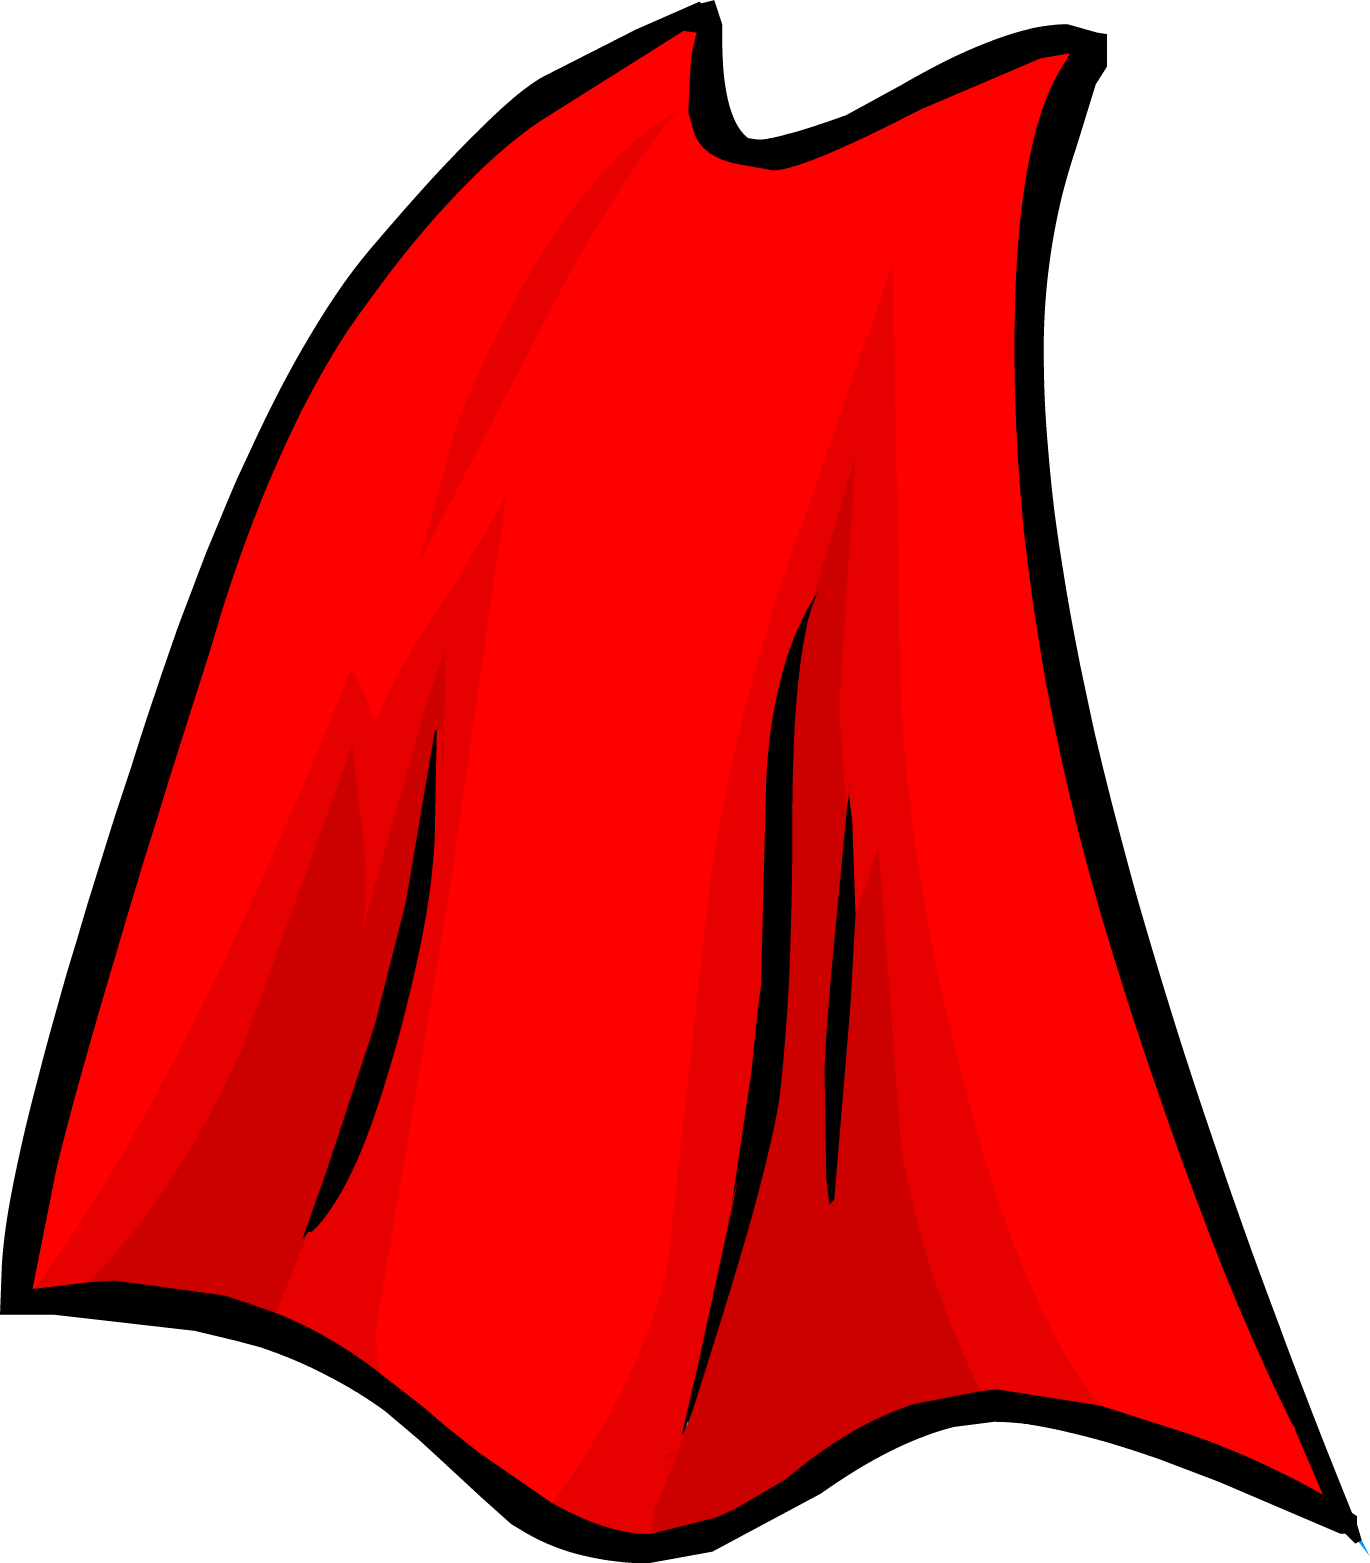 Red Cape Club Penguin Wiki The Free Edit-Red Cape Club Penguin Wiki The Free Editable Encyclopedia About-8